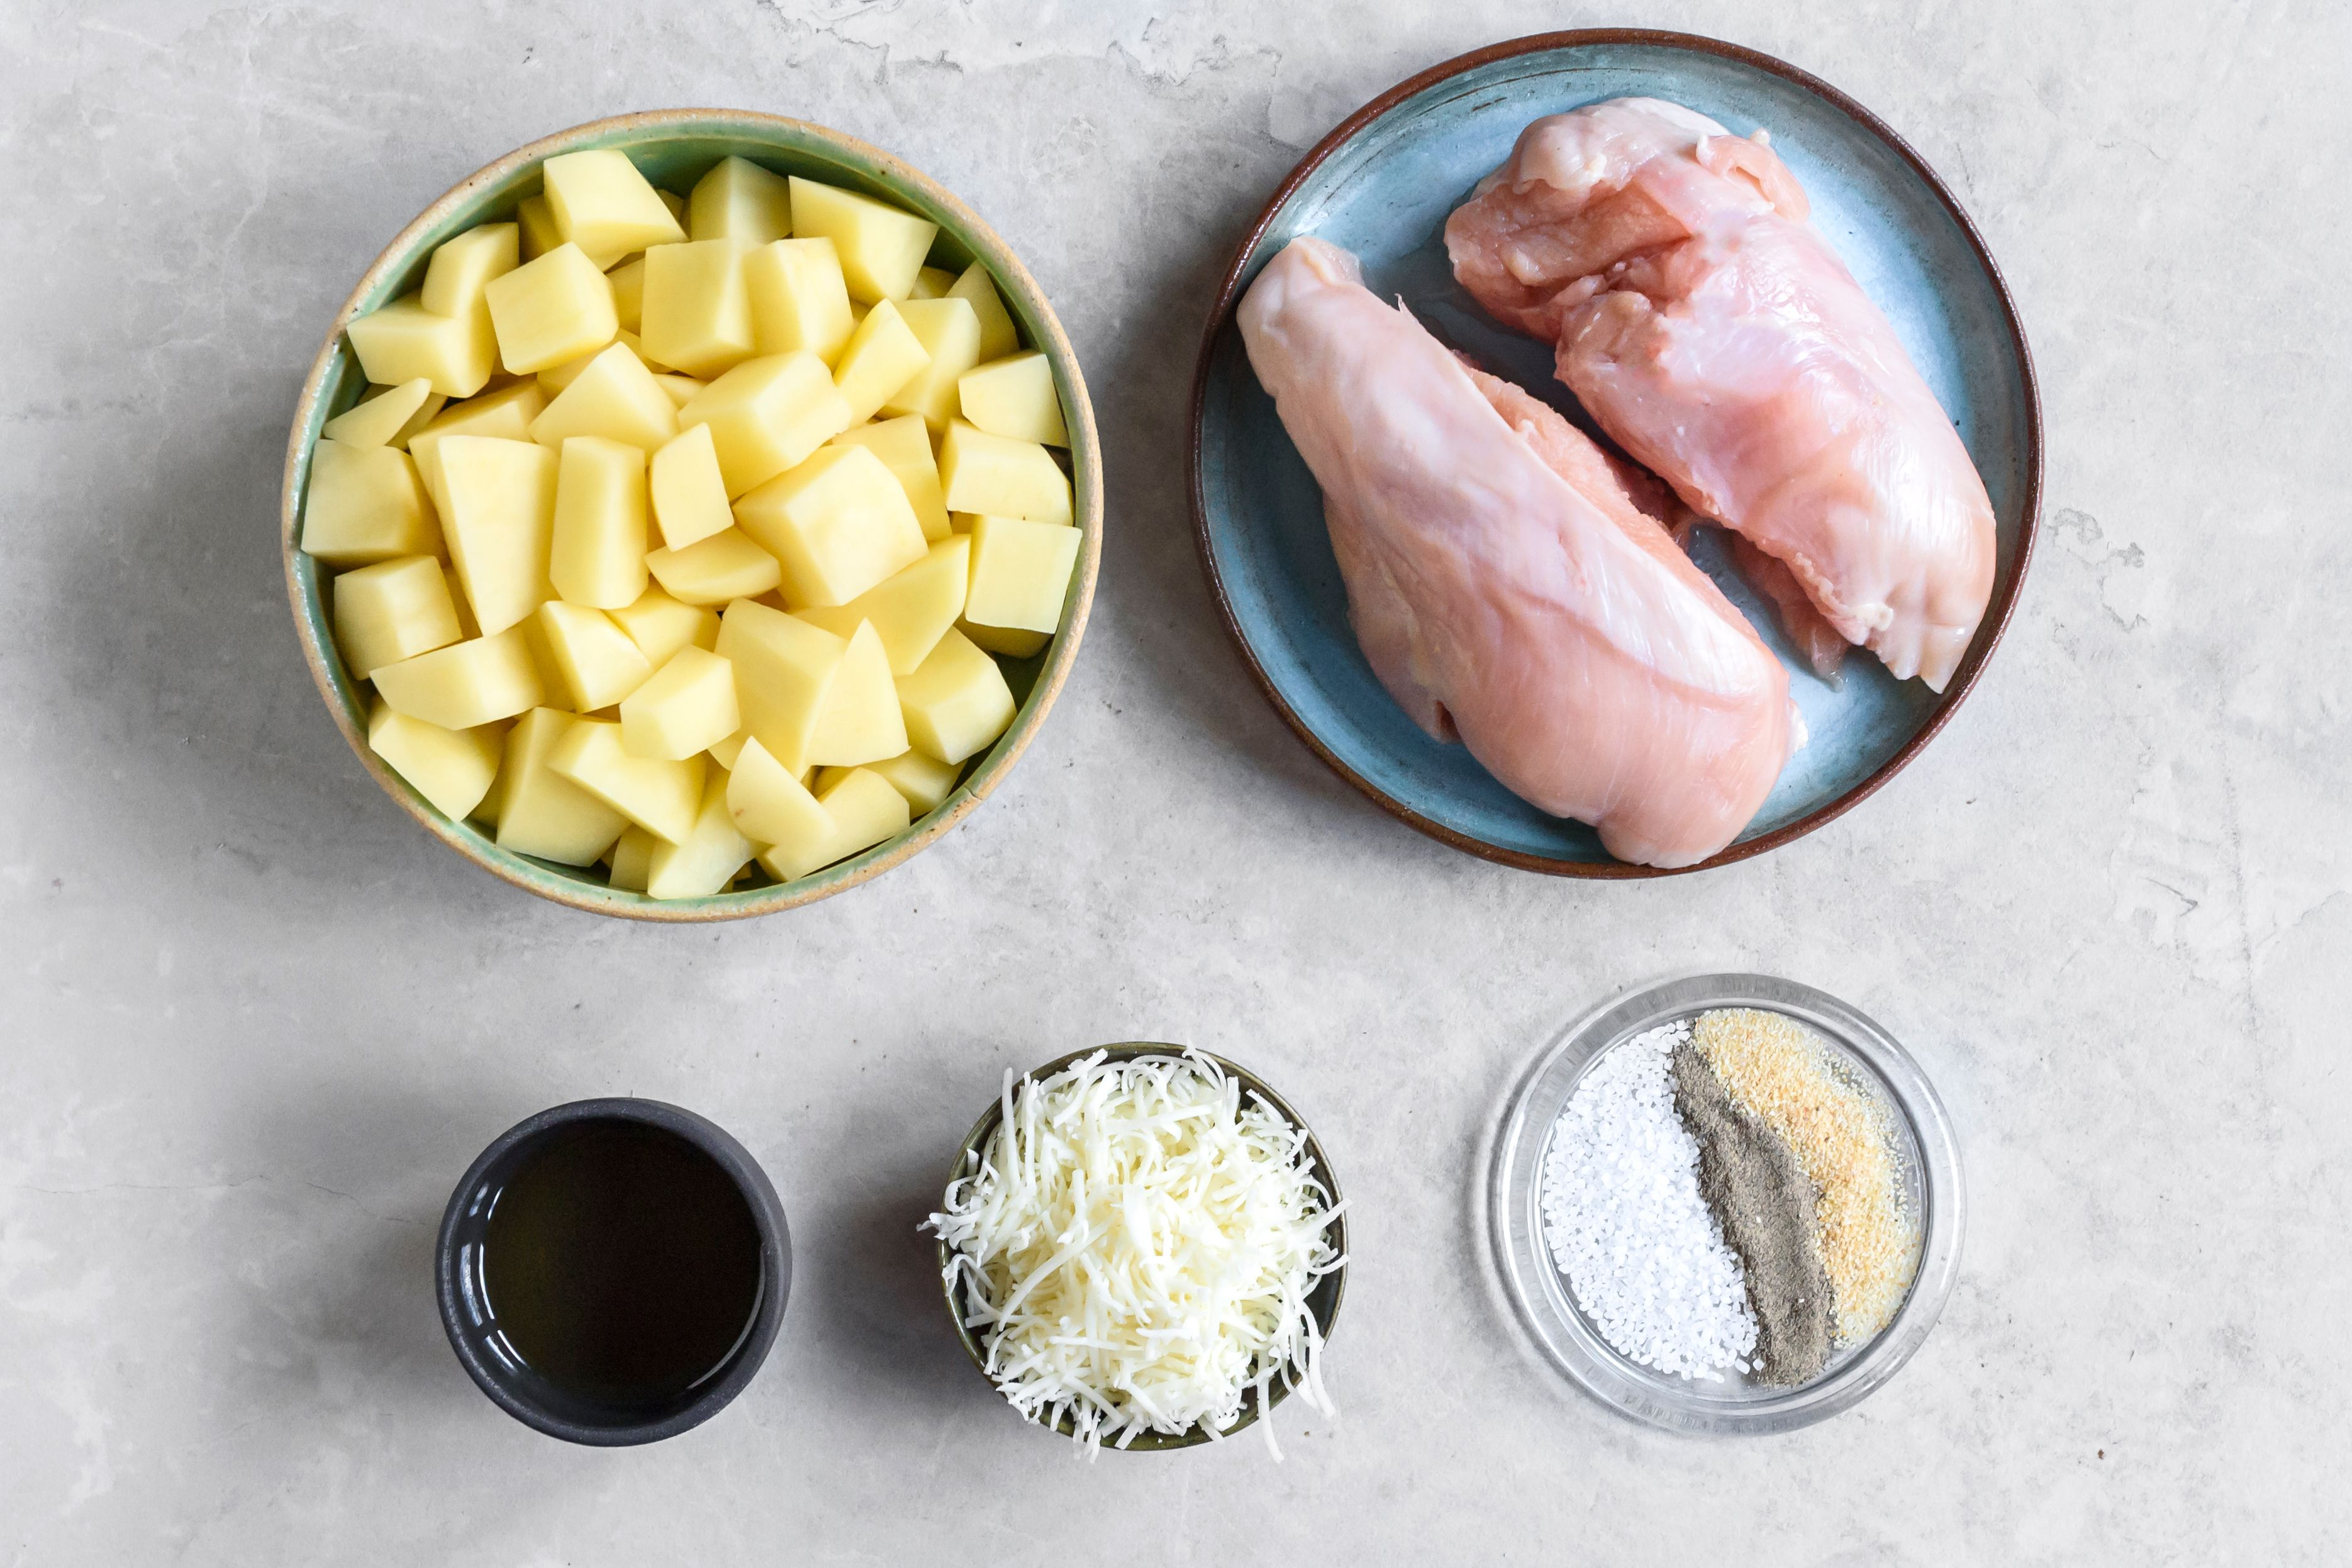 Baked Chicken and Potatoes Recipe ingredients